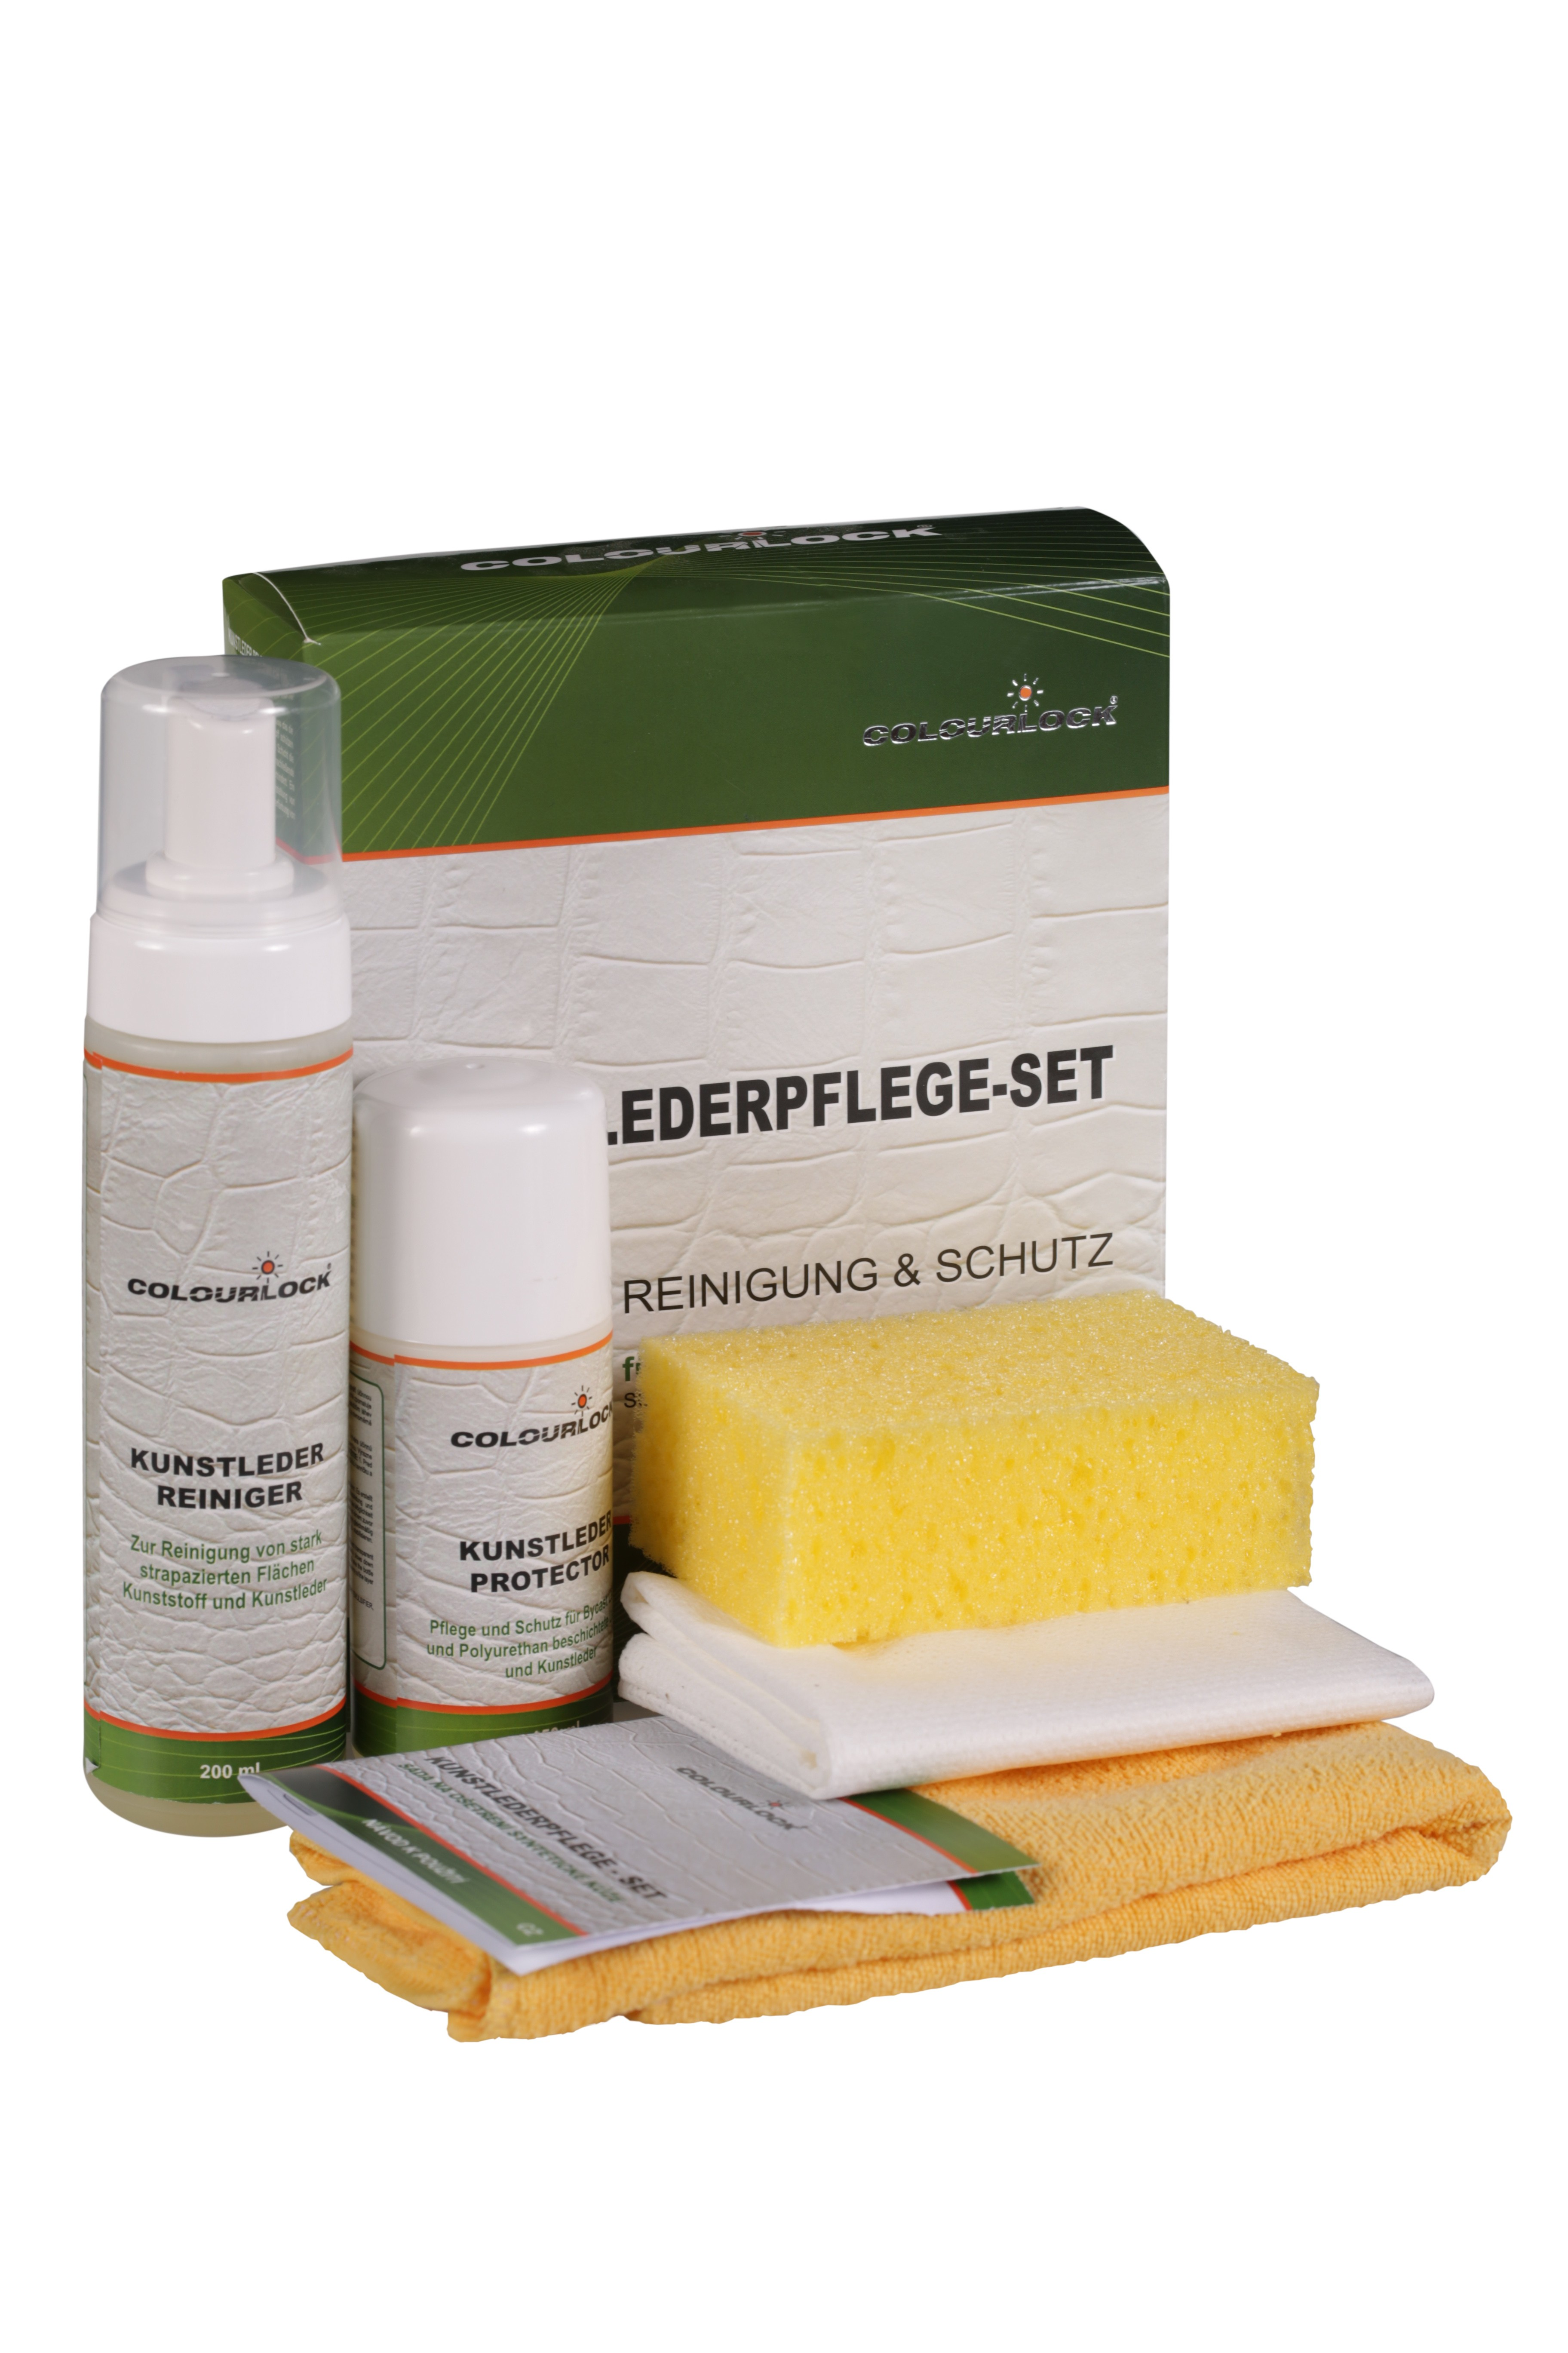 Artificial leather care set